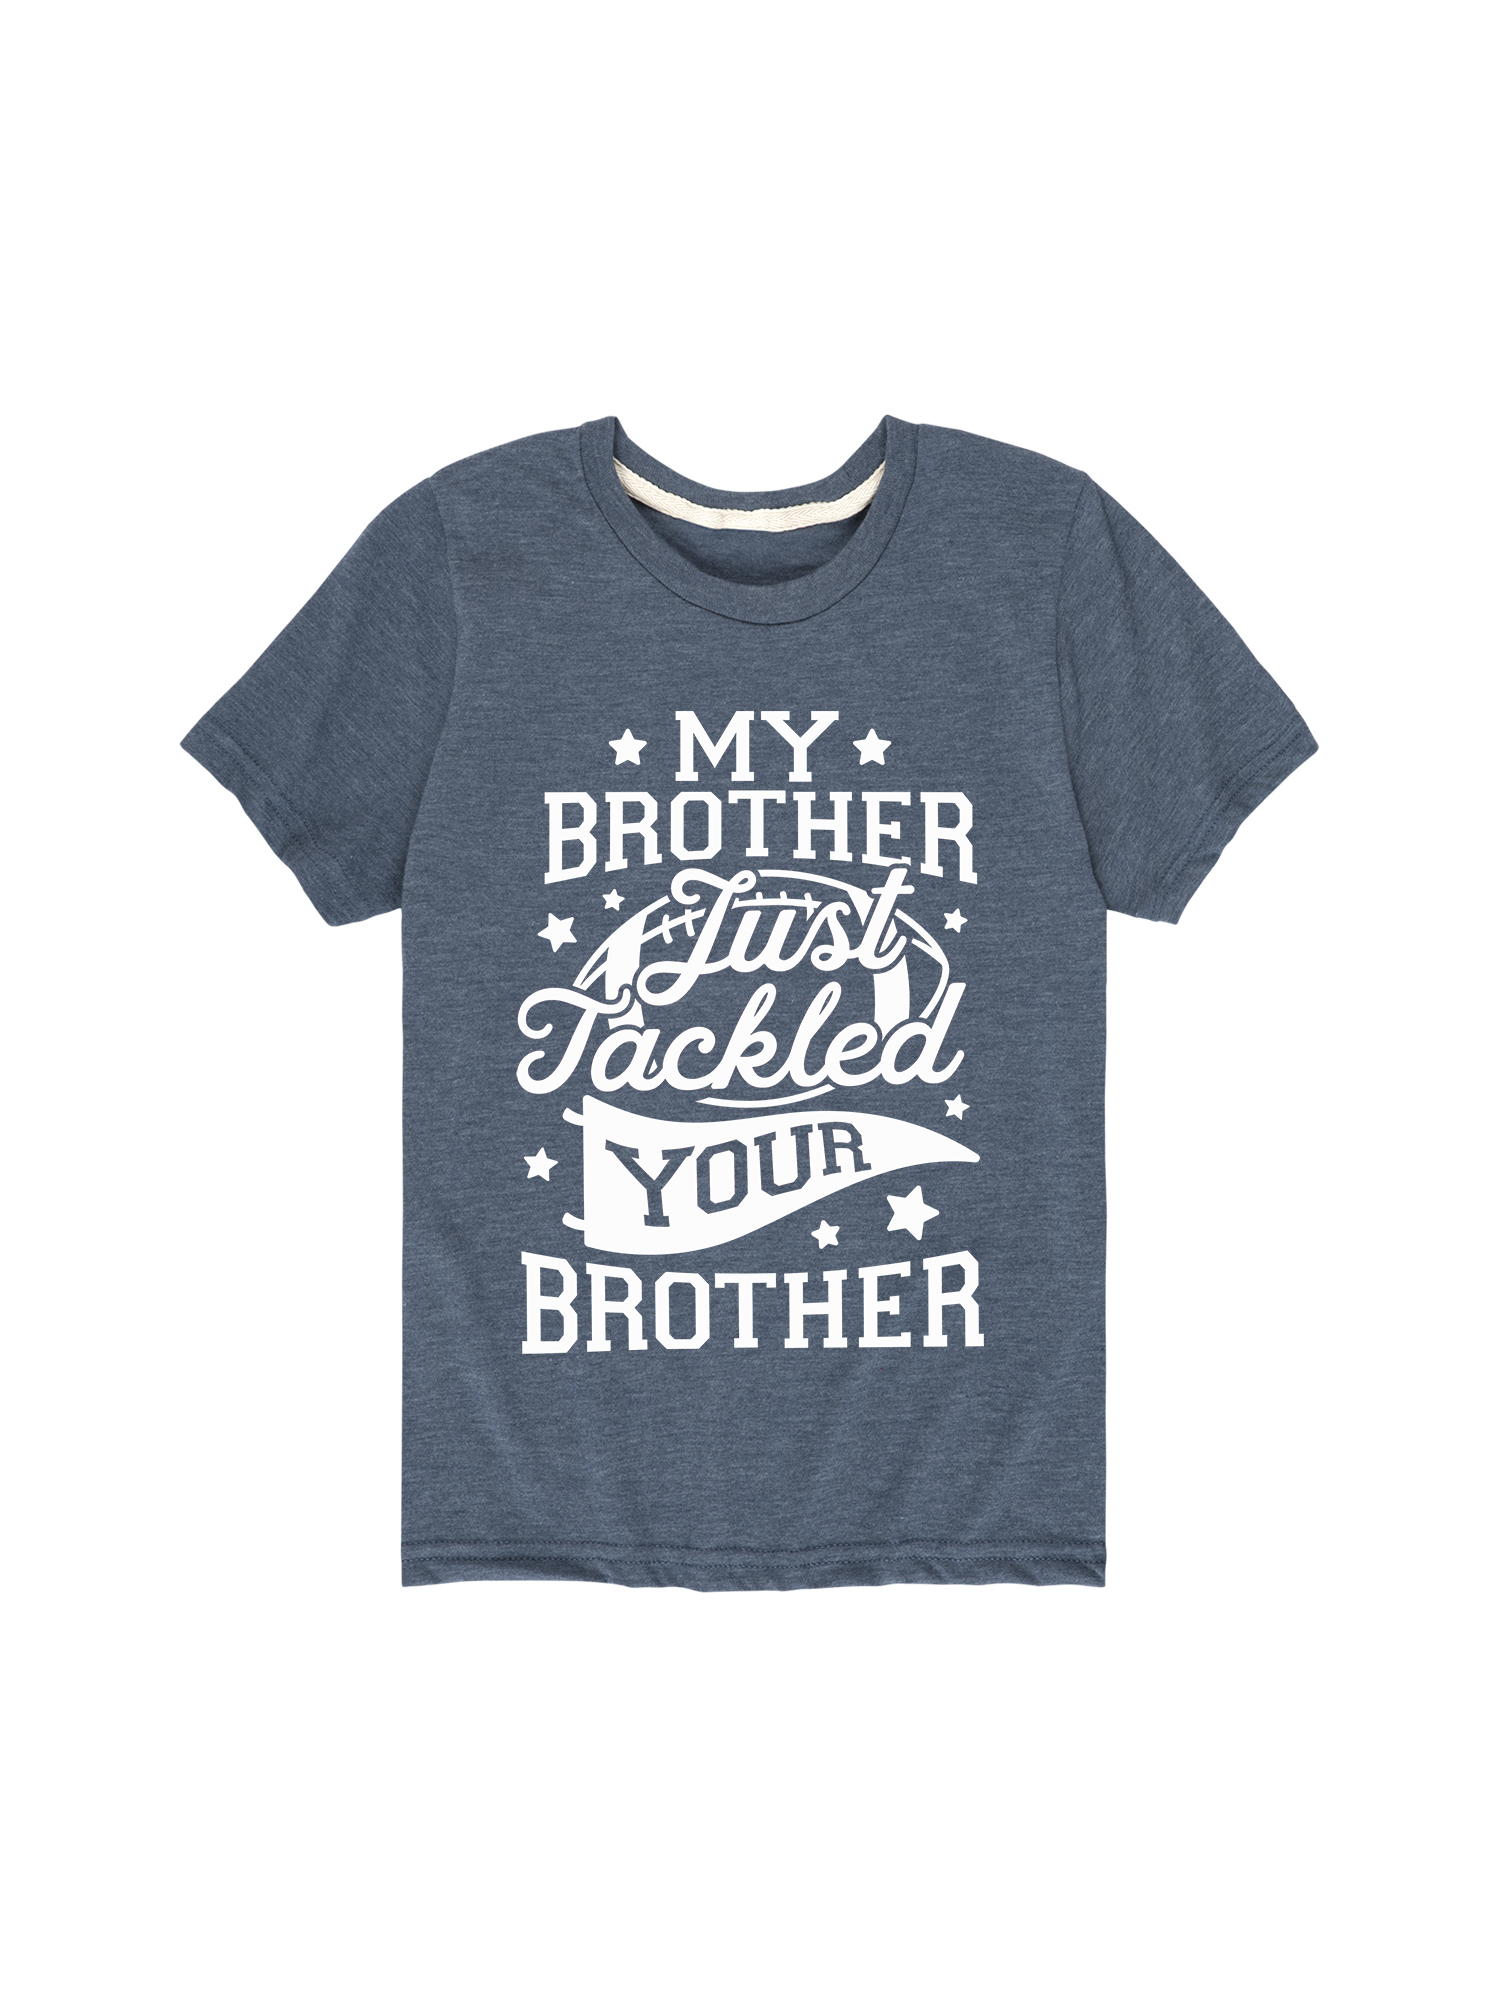 Just Tackled Your Brother - Toddler Short Sleeve Tee